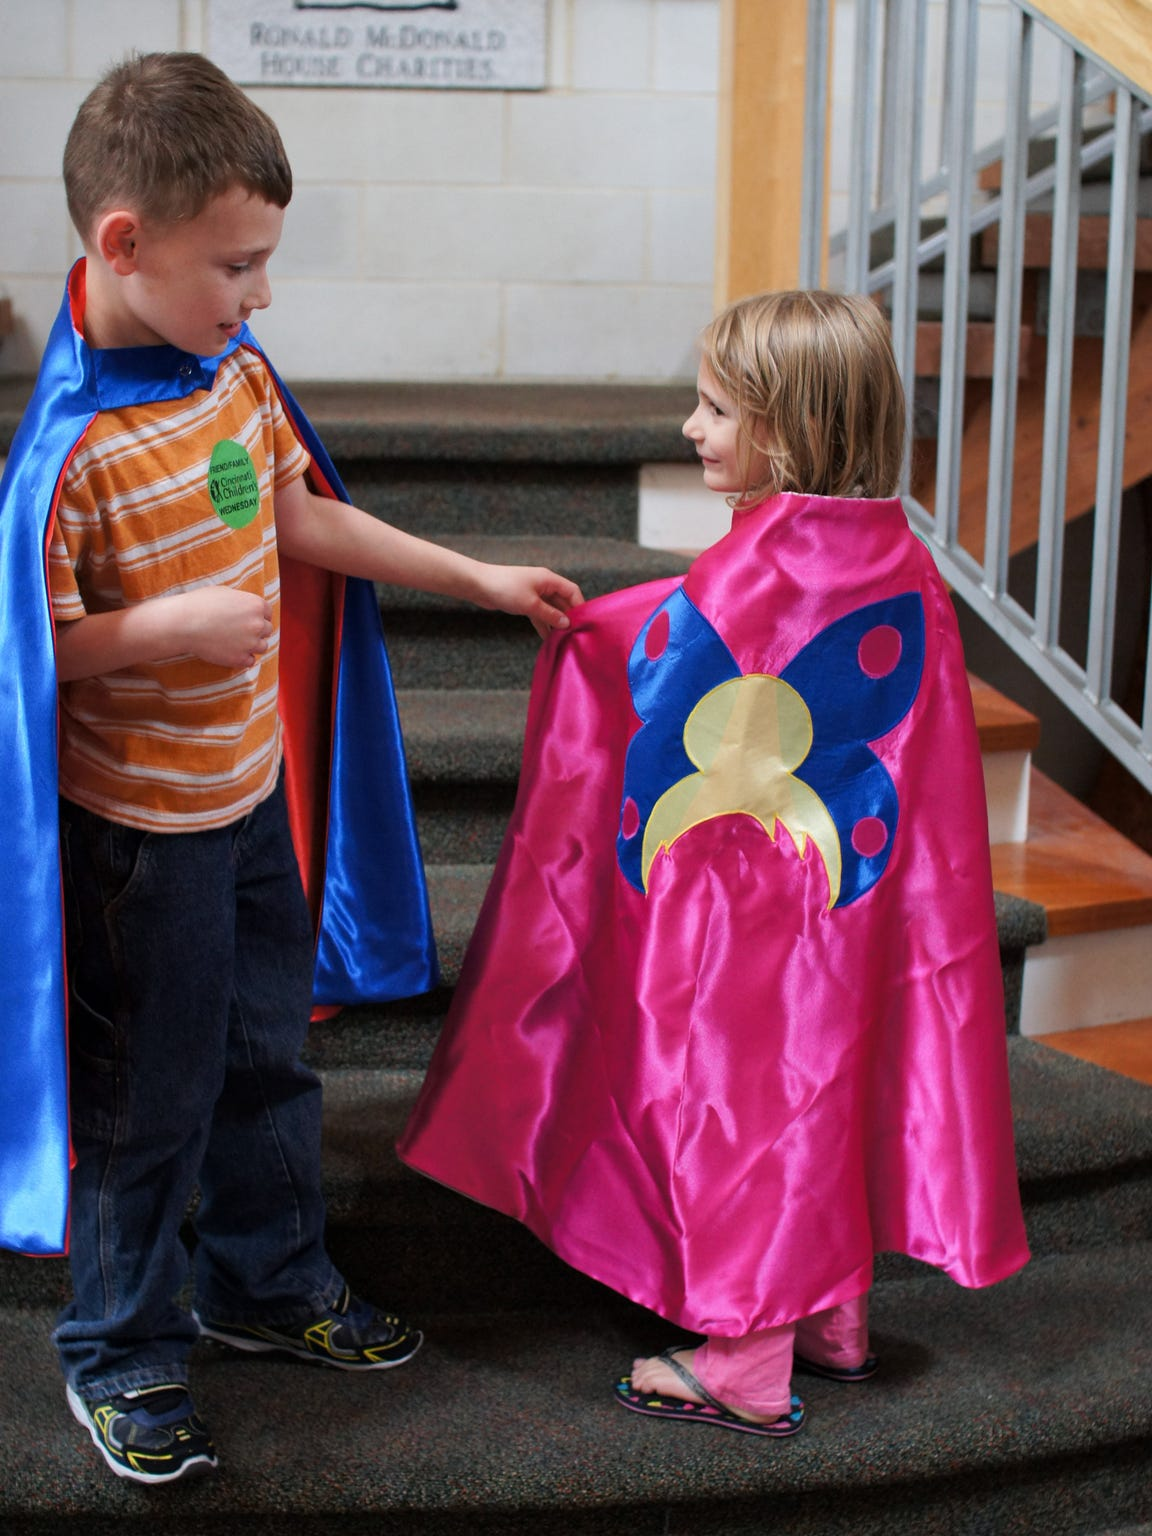 The Hero Design Company program made capes for Joseph